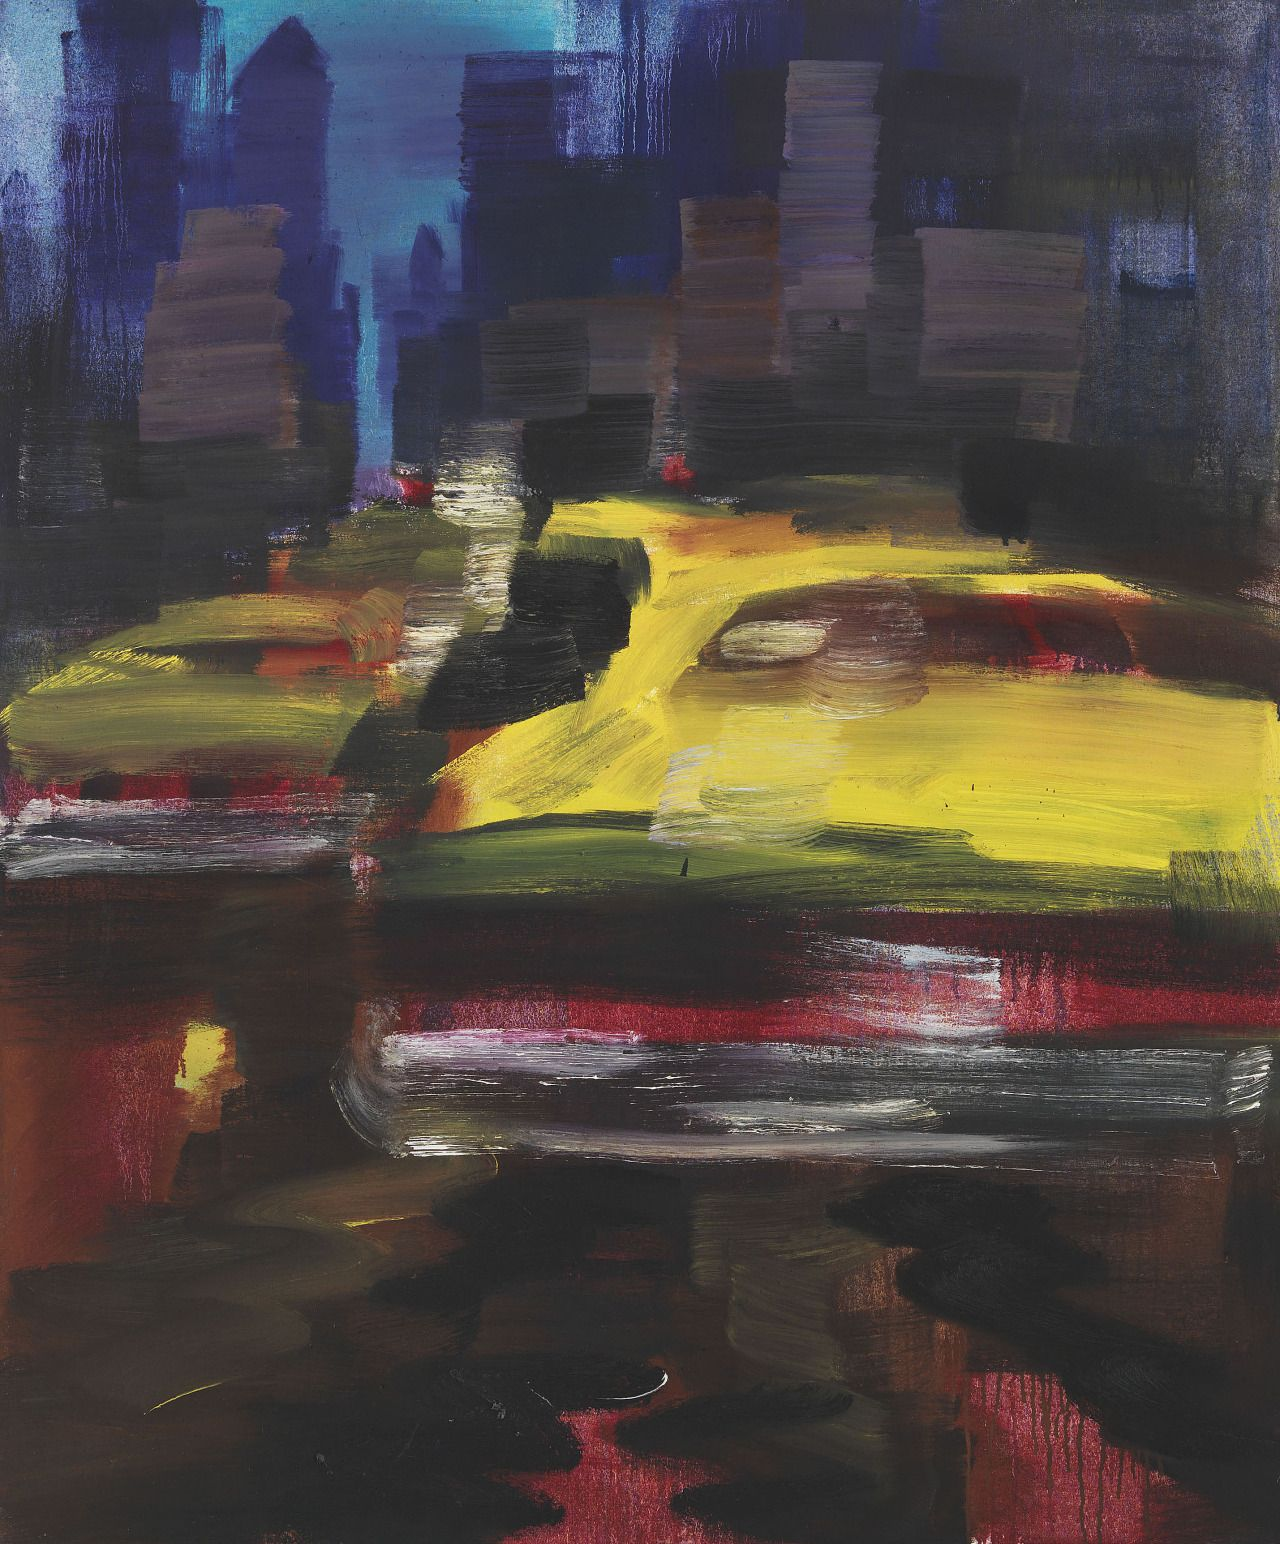 Rainer Fetting (German, b. 1949), Taxis, 1991. Oil on canvas, 153 x 127 cm.